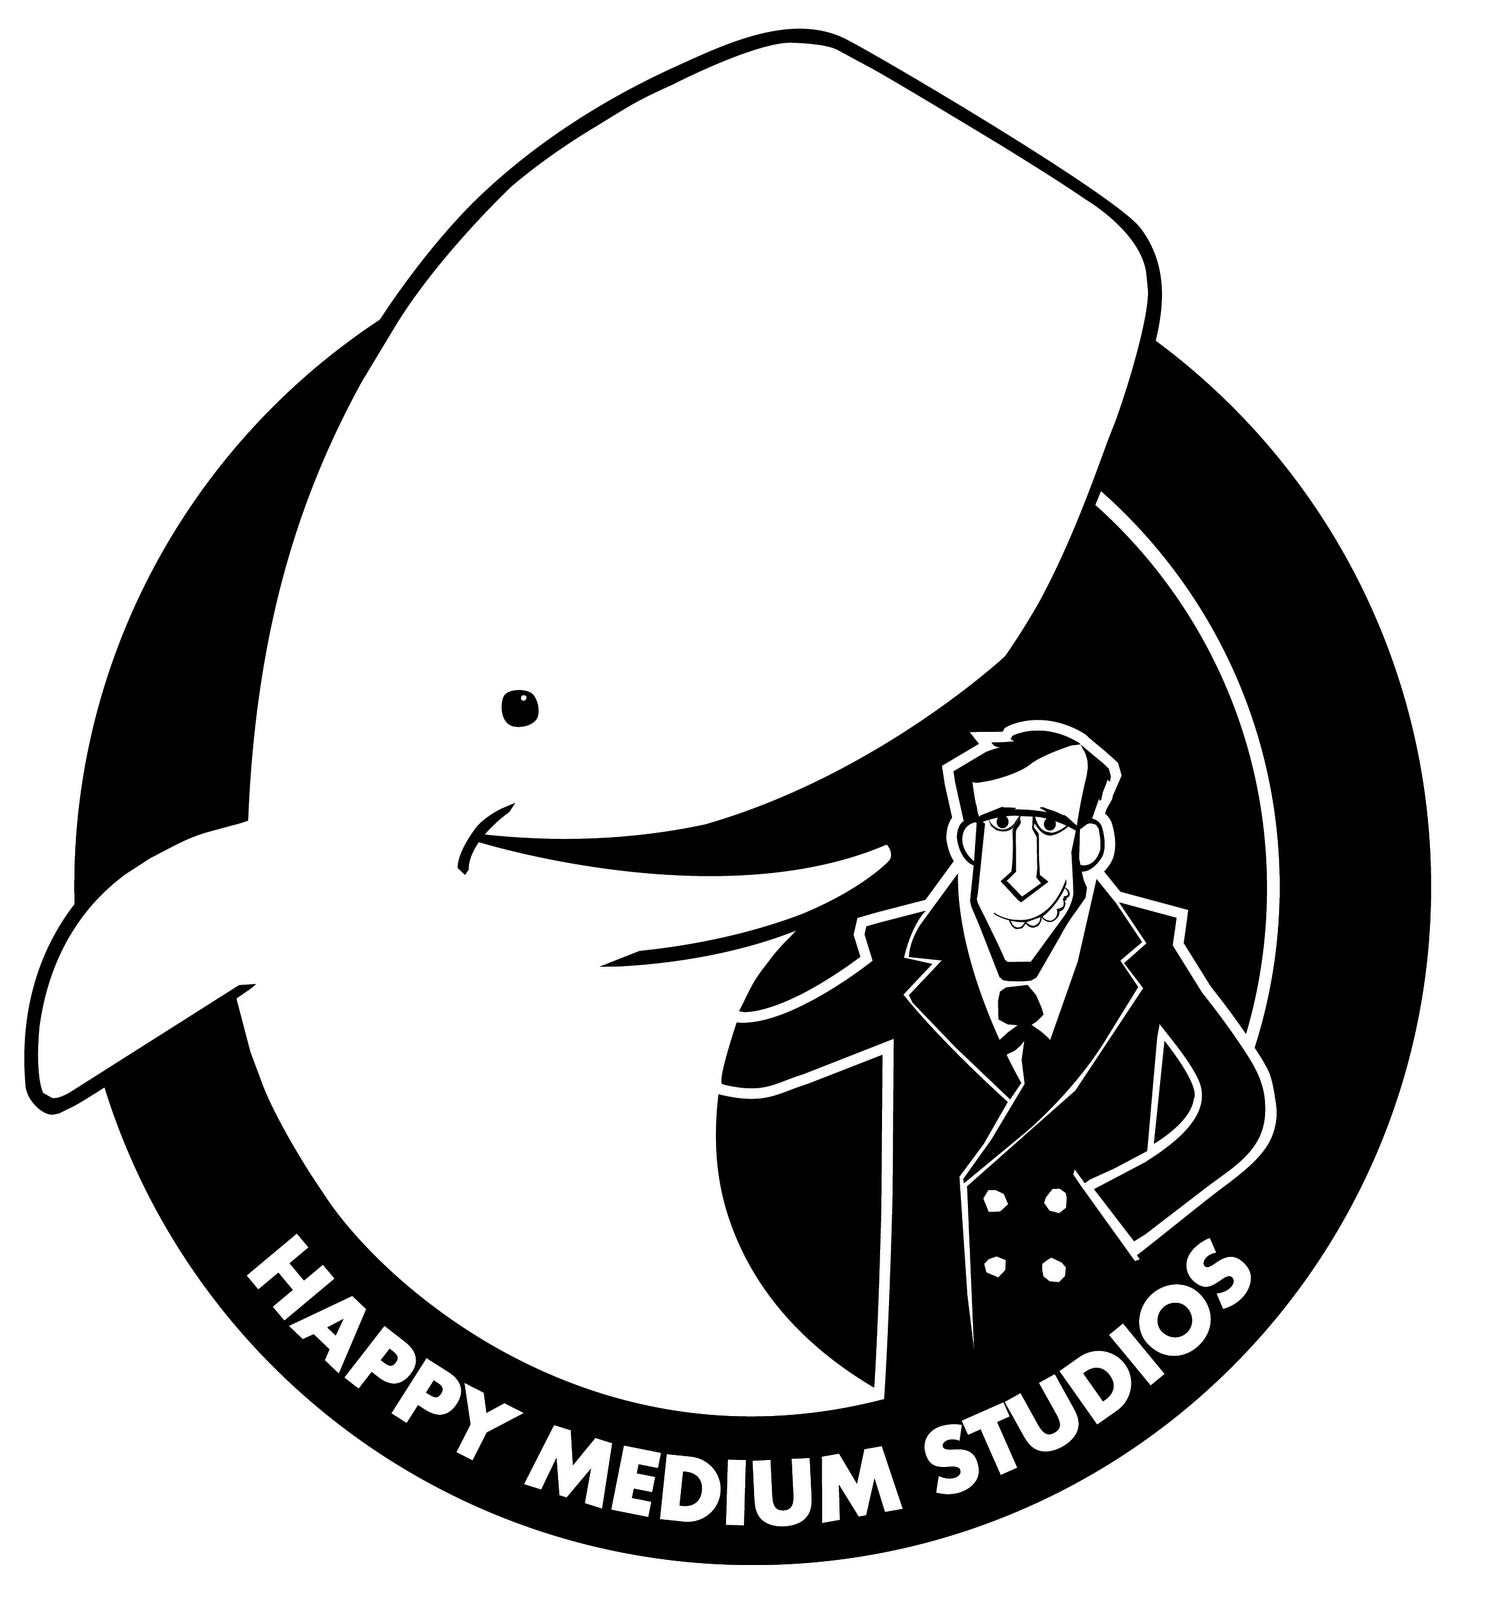 HAPPY MEDIUM STUDIOS: GONE WITH THE WIND AND MY TIME